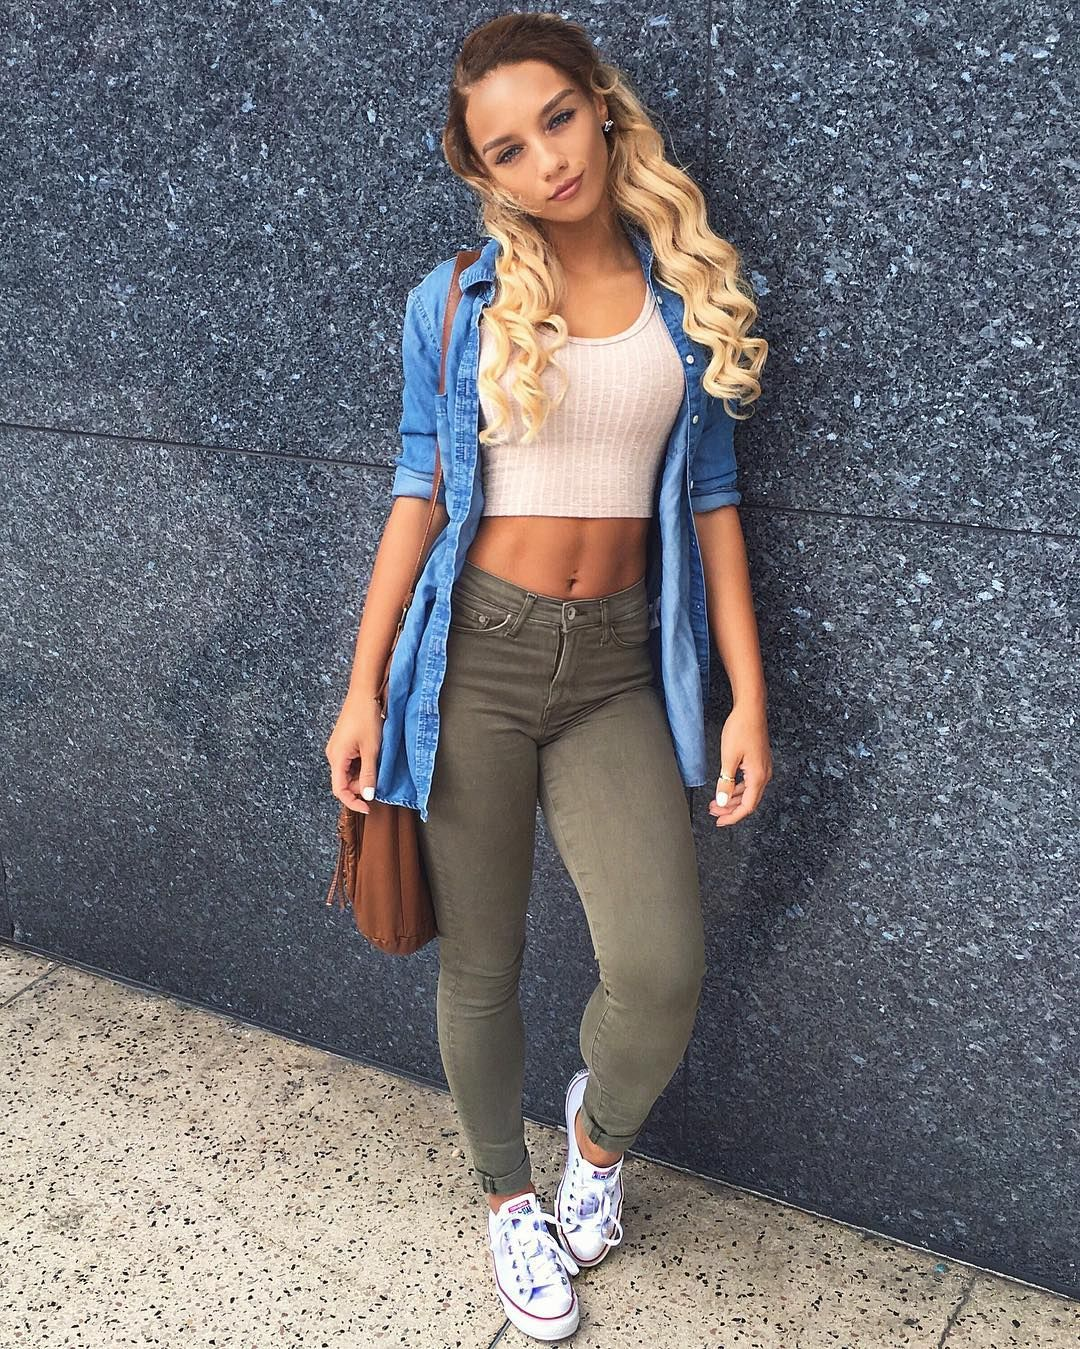 Jena Frumes On Instagram If It Doesnt Challenge You It Wont